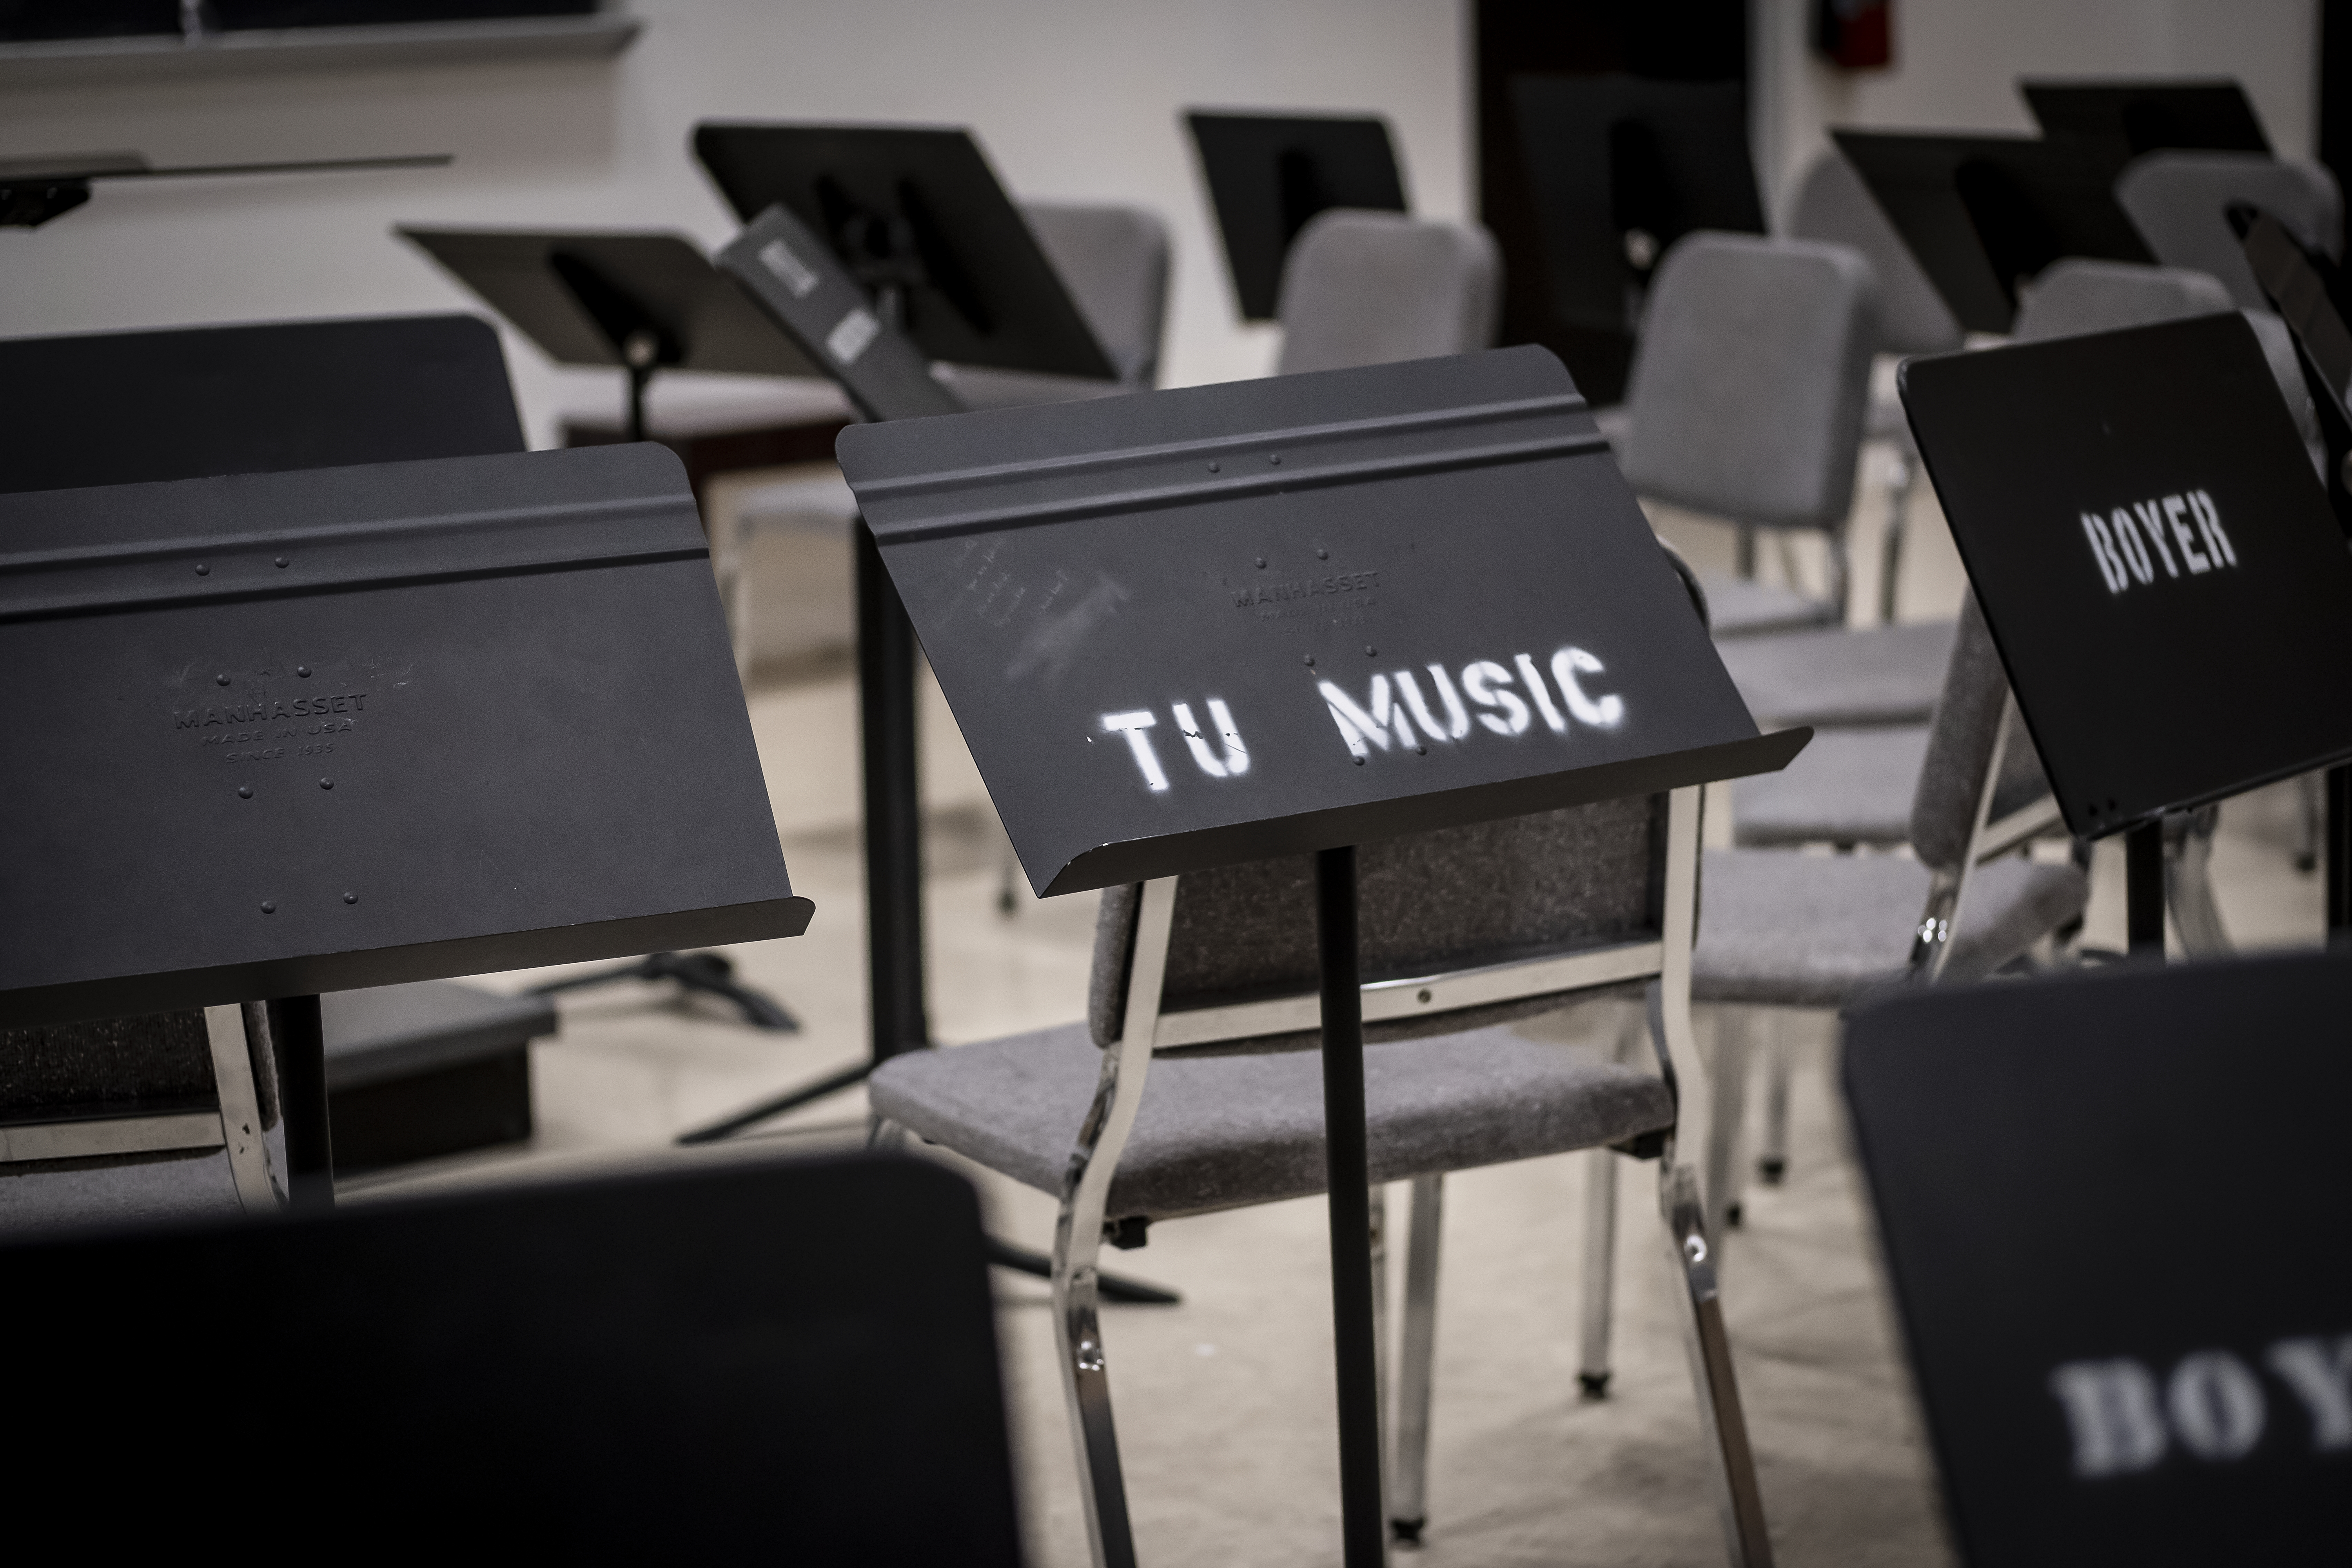 Close up of chairs and metal music stands